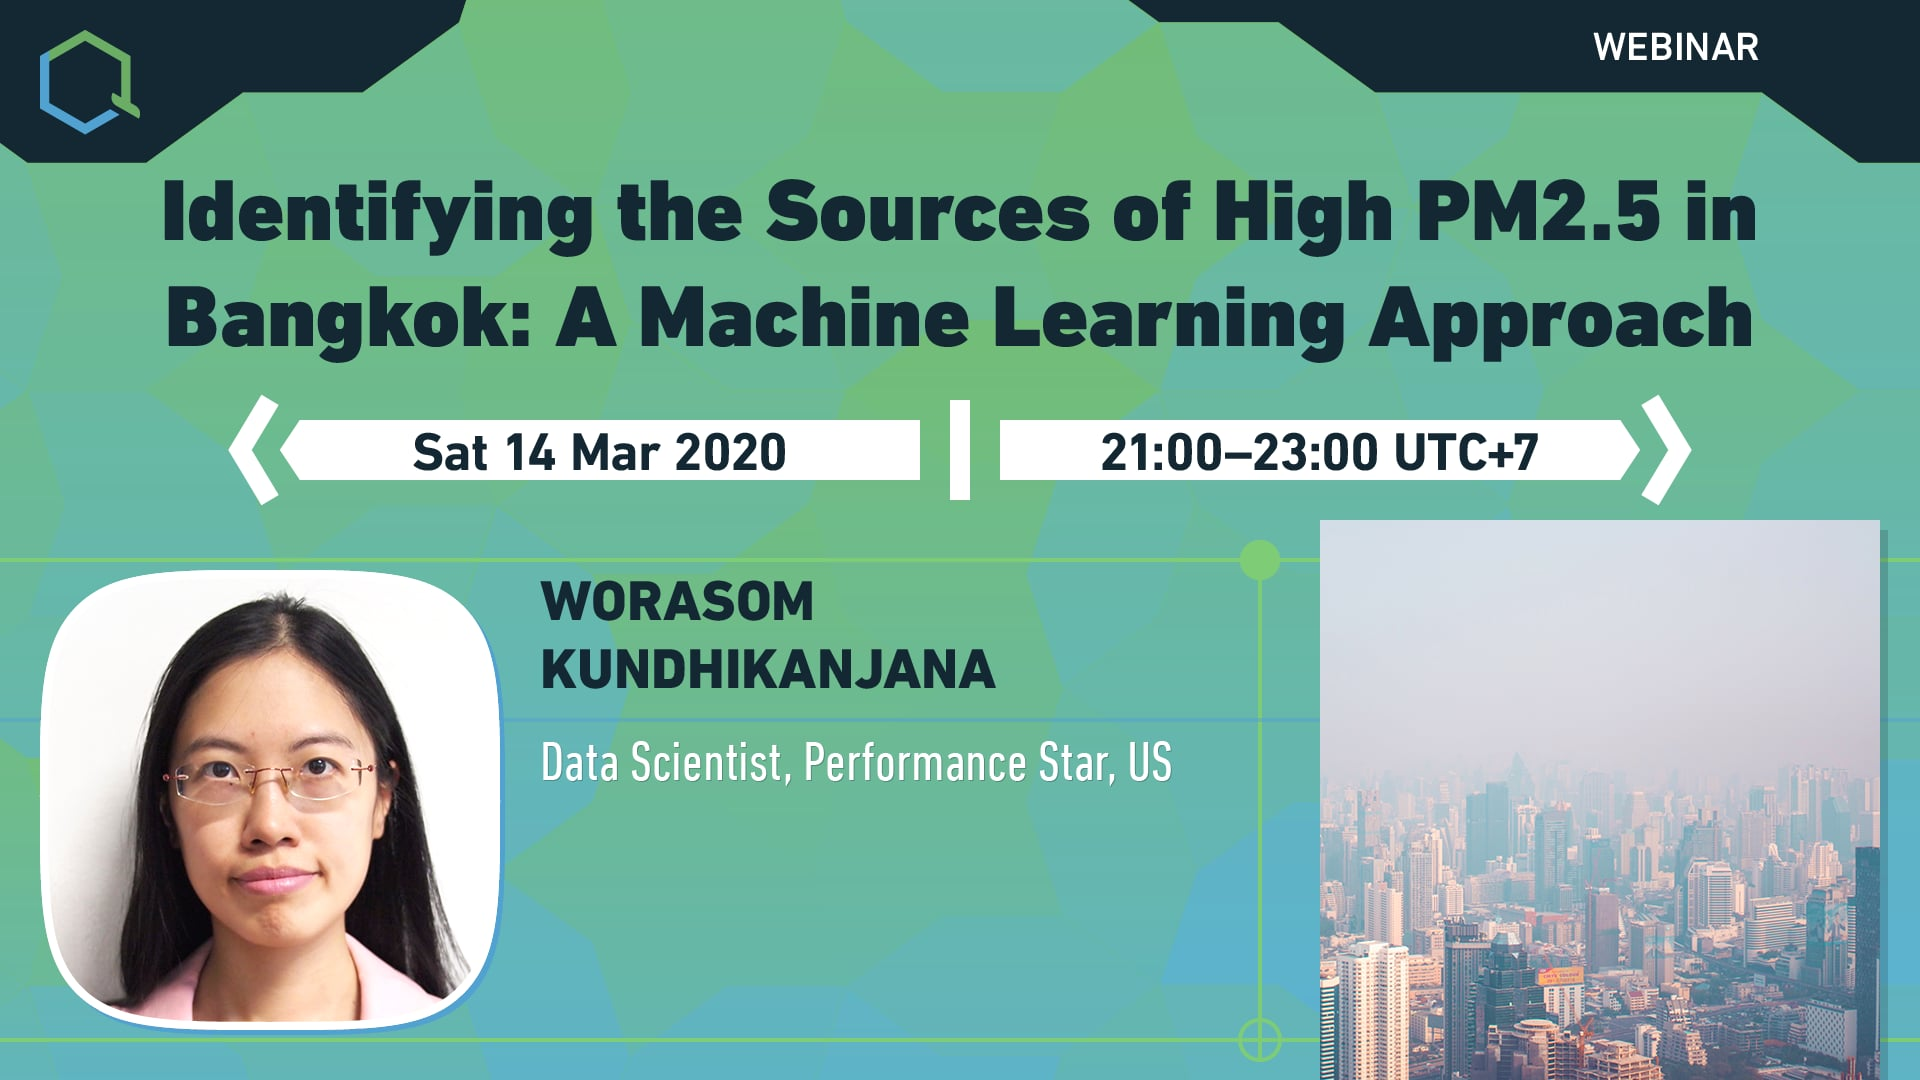 Identifying the Sources of High PM2.5 in Bangkok: A Machine Learning Approach